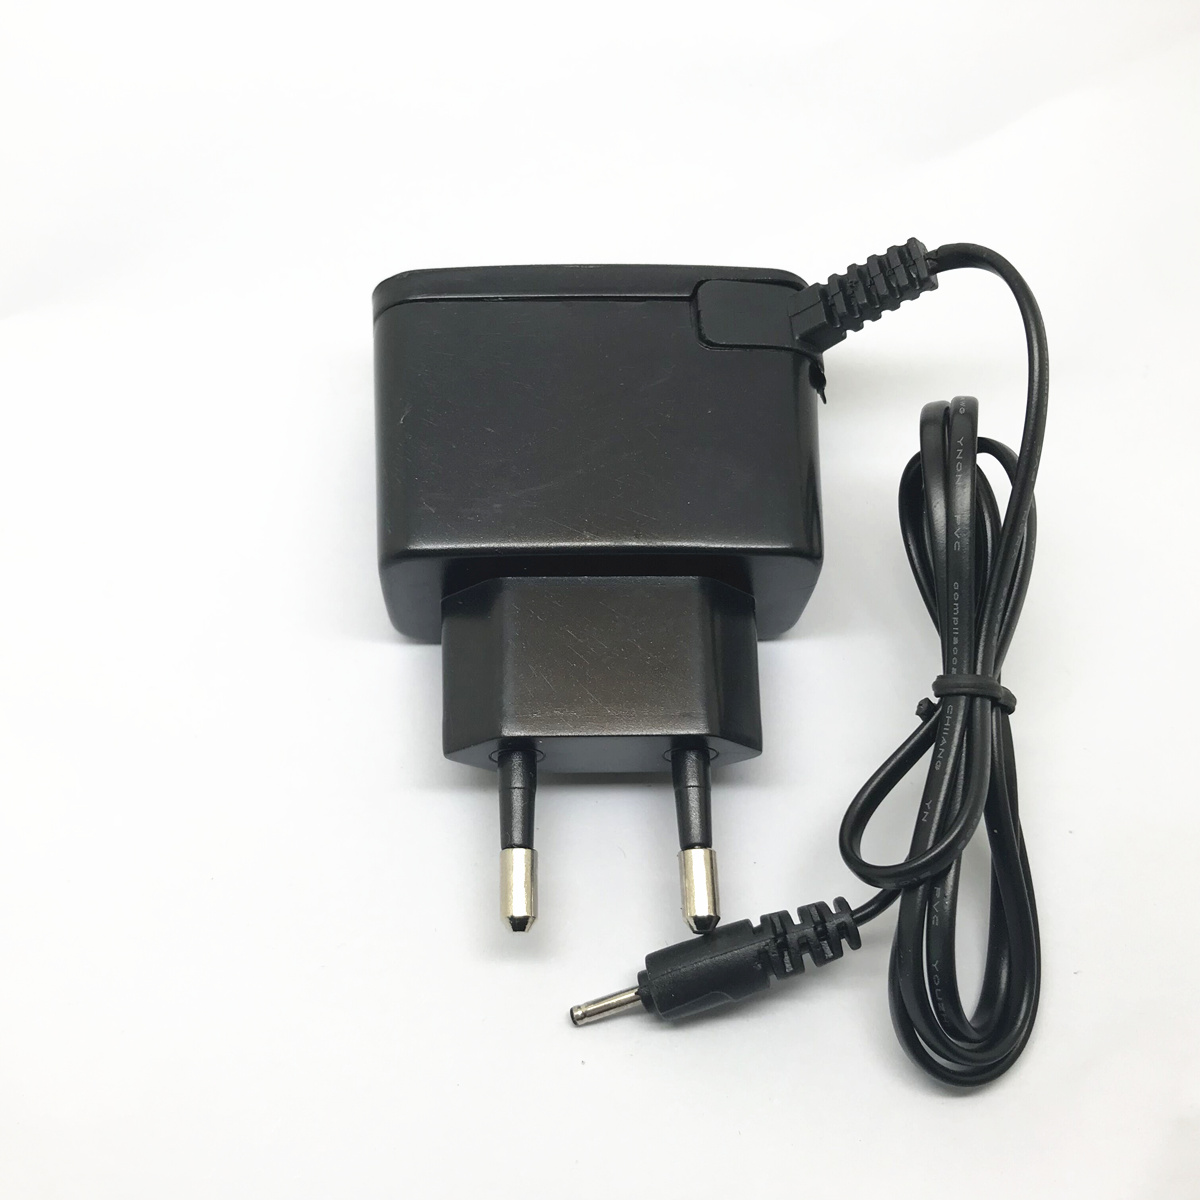 Eu&US Plug Travel Wall Ac Charger Power Adapter AC-3E For Nokia 6125 6126 6131 6133 6136 6151 6165i 6210 N70 N71 N72 N73 N75 N92